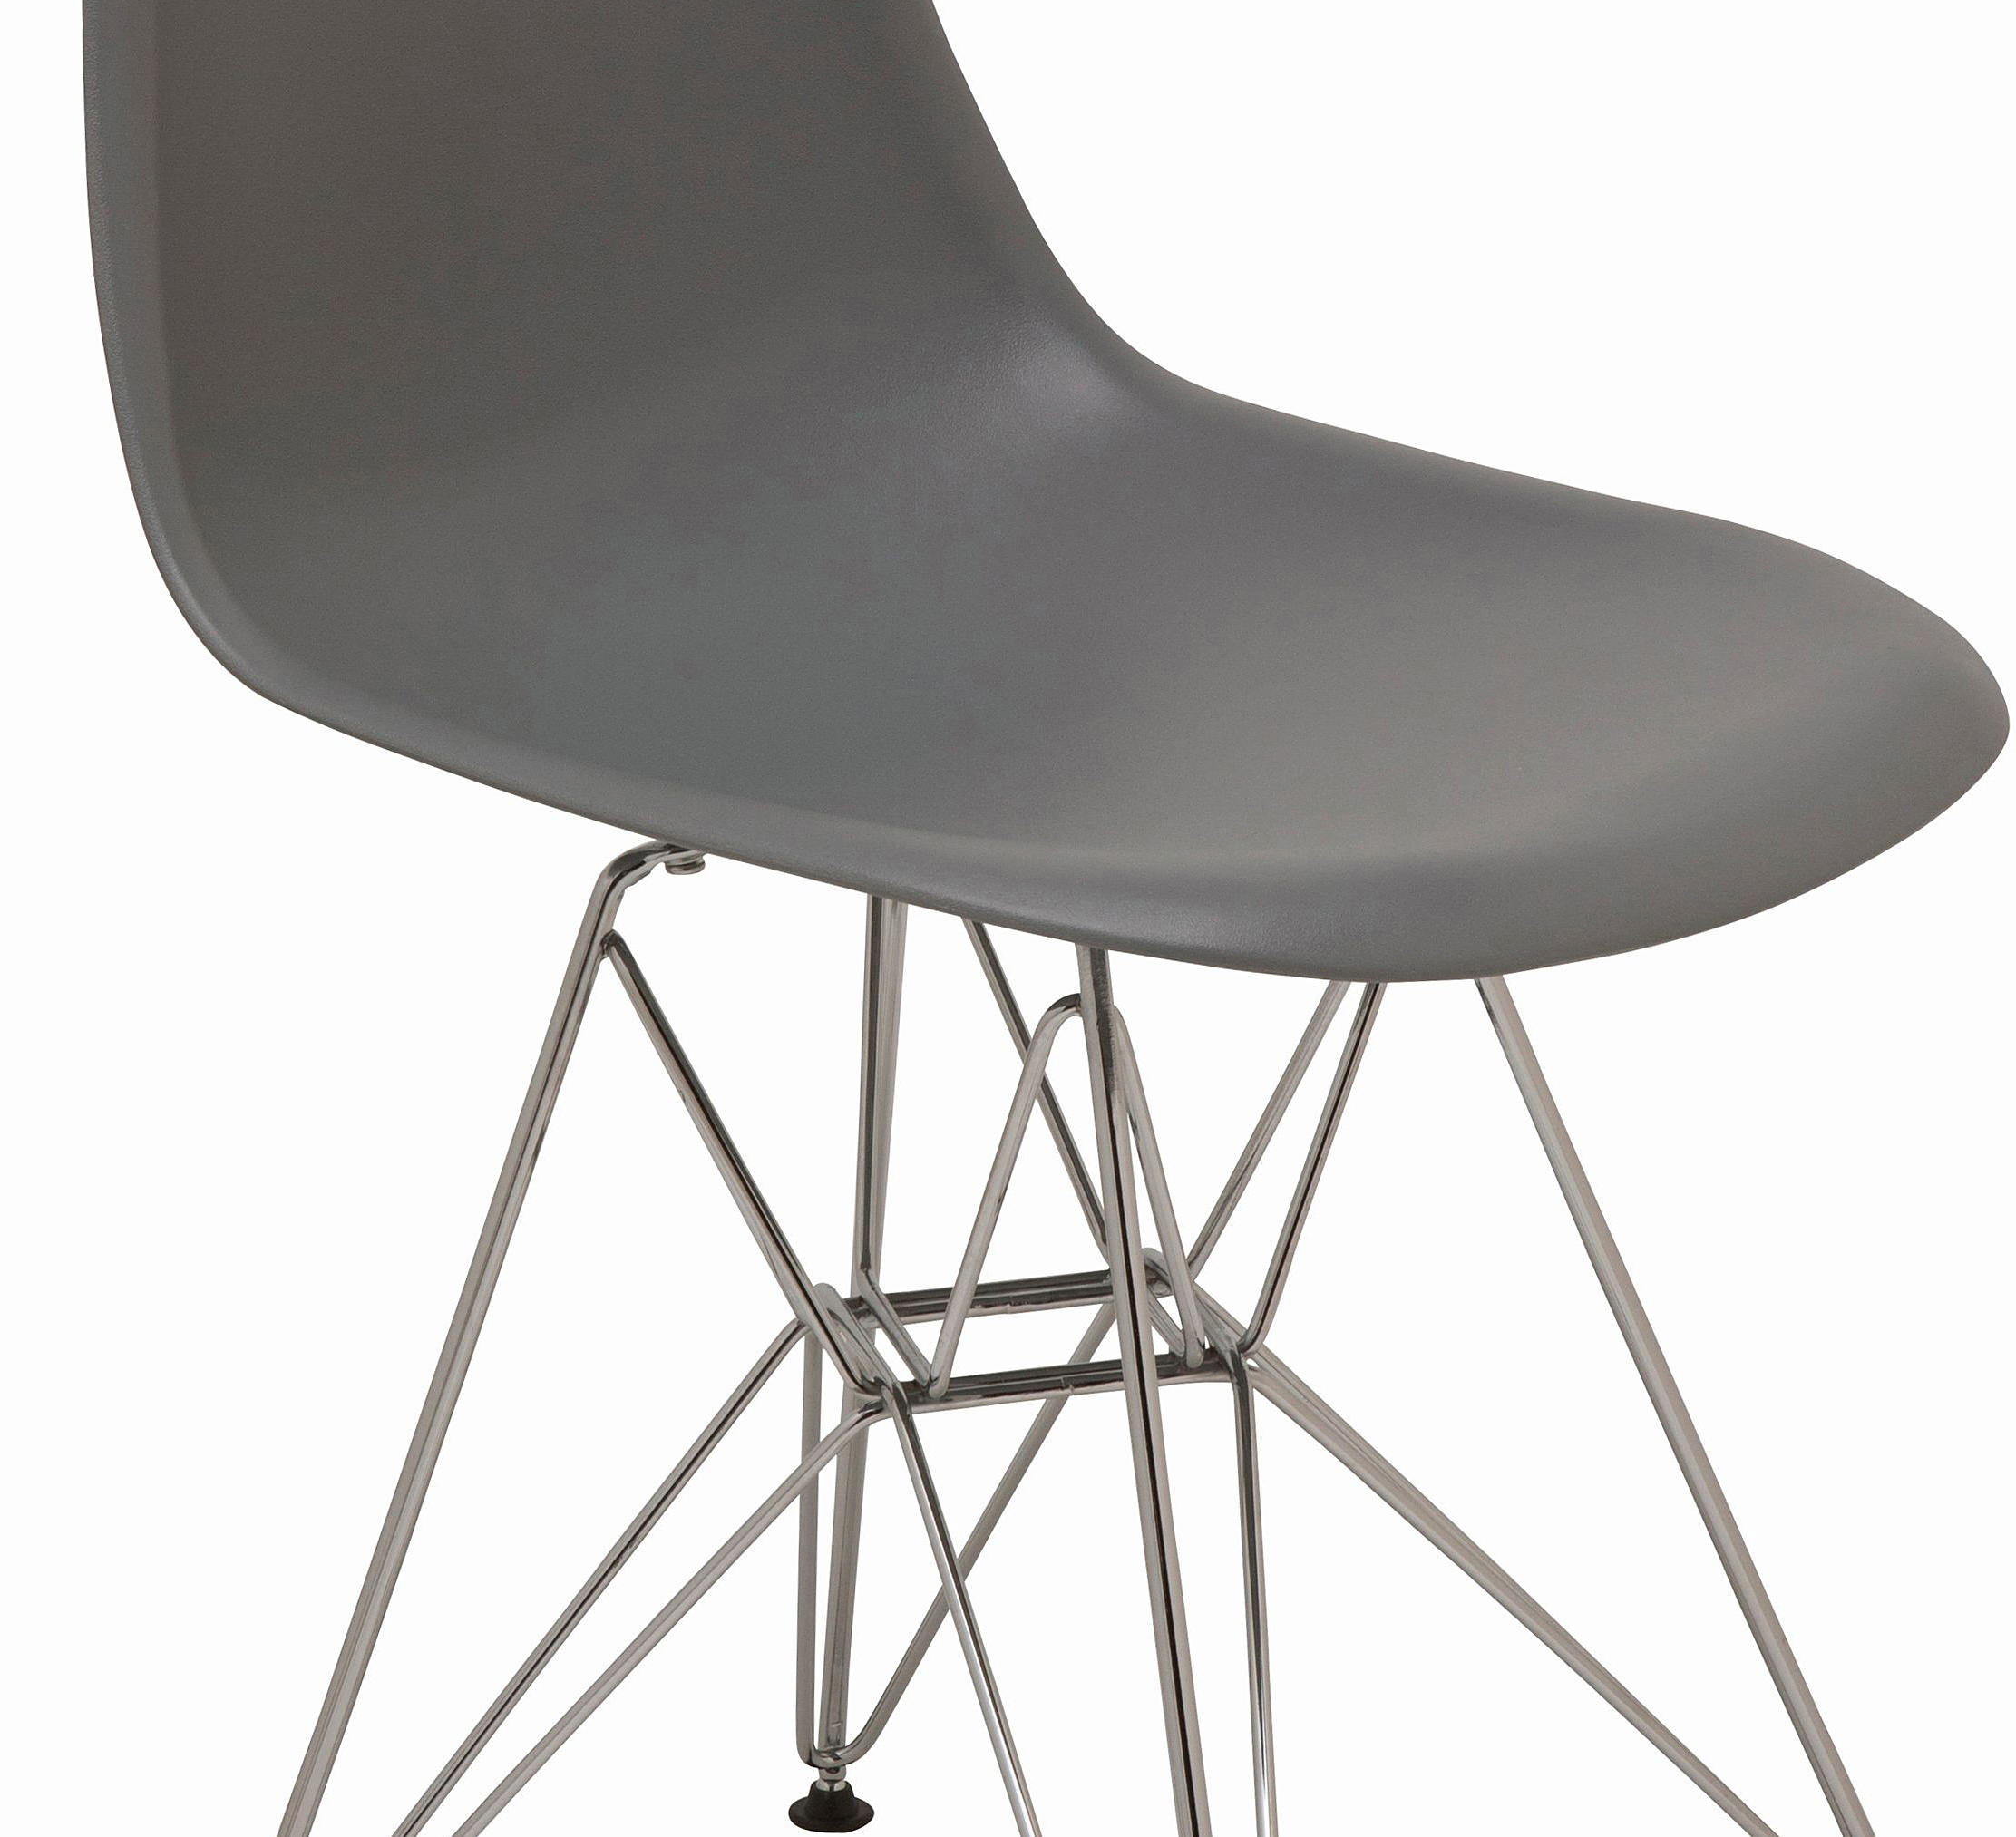 the nuevo max dining chair in grey